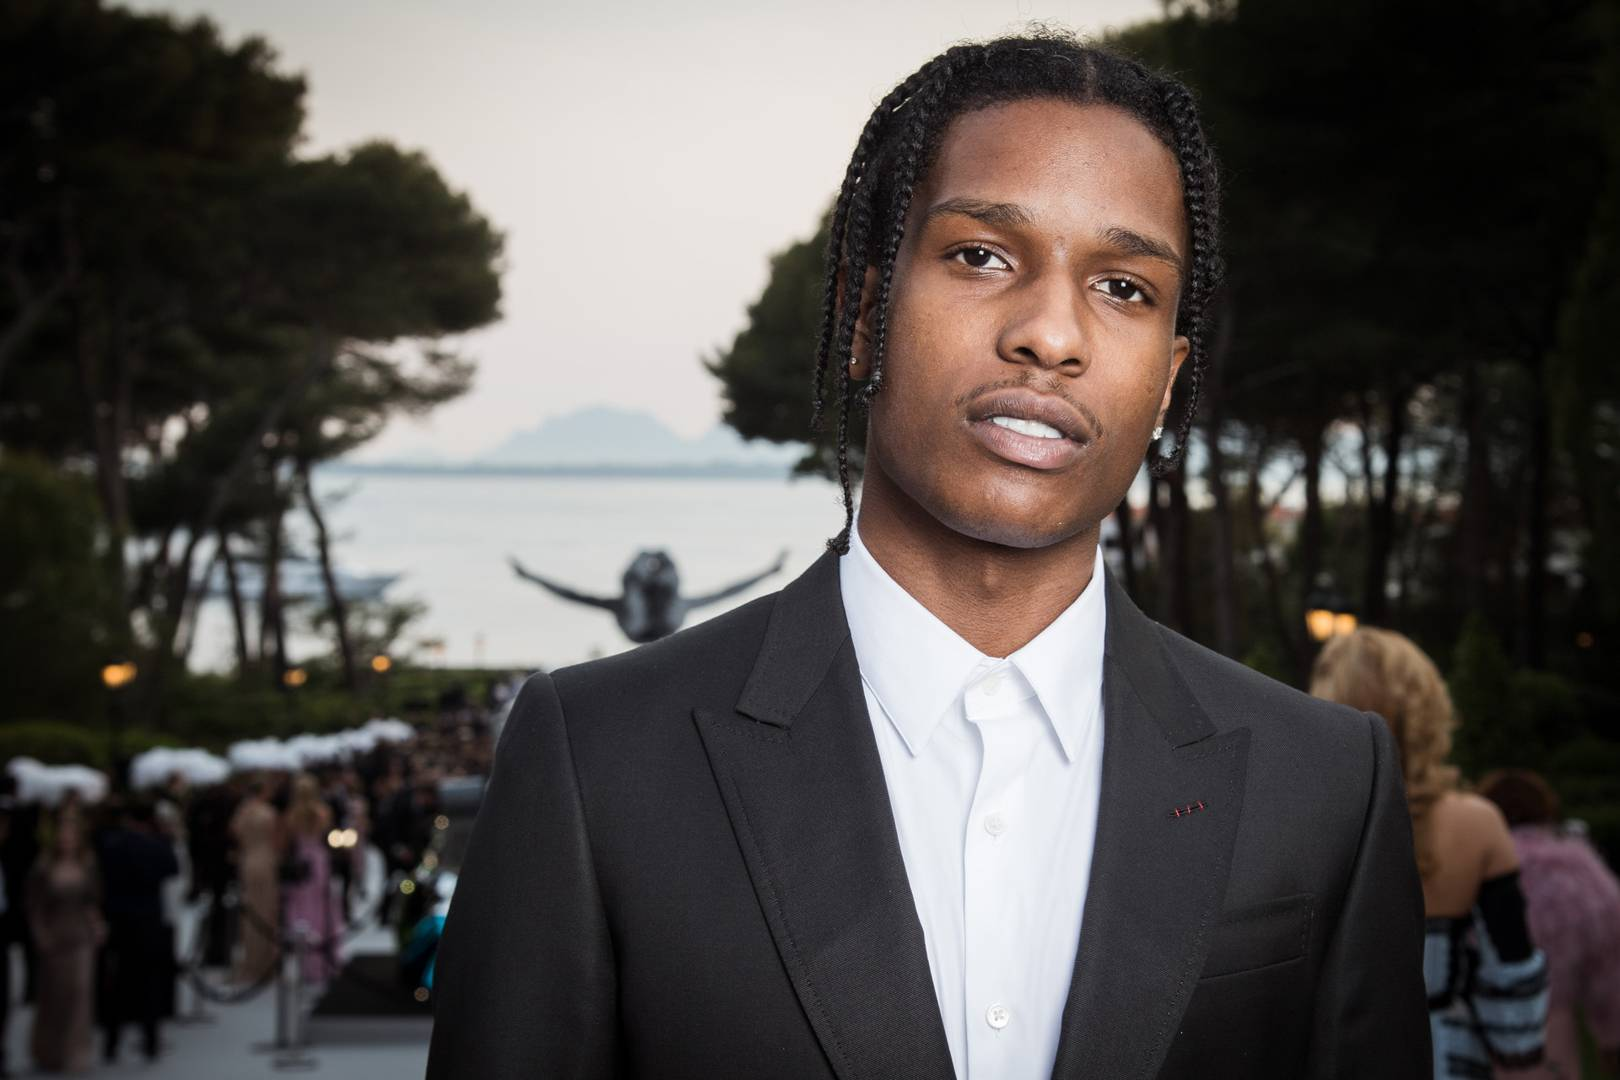 You need to start dressing like A$AP Rocky ASAP